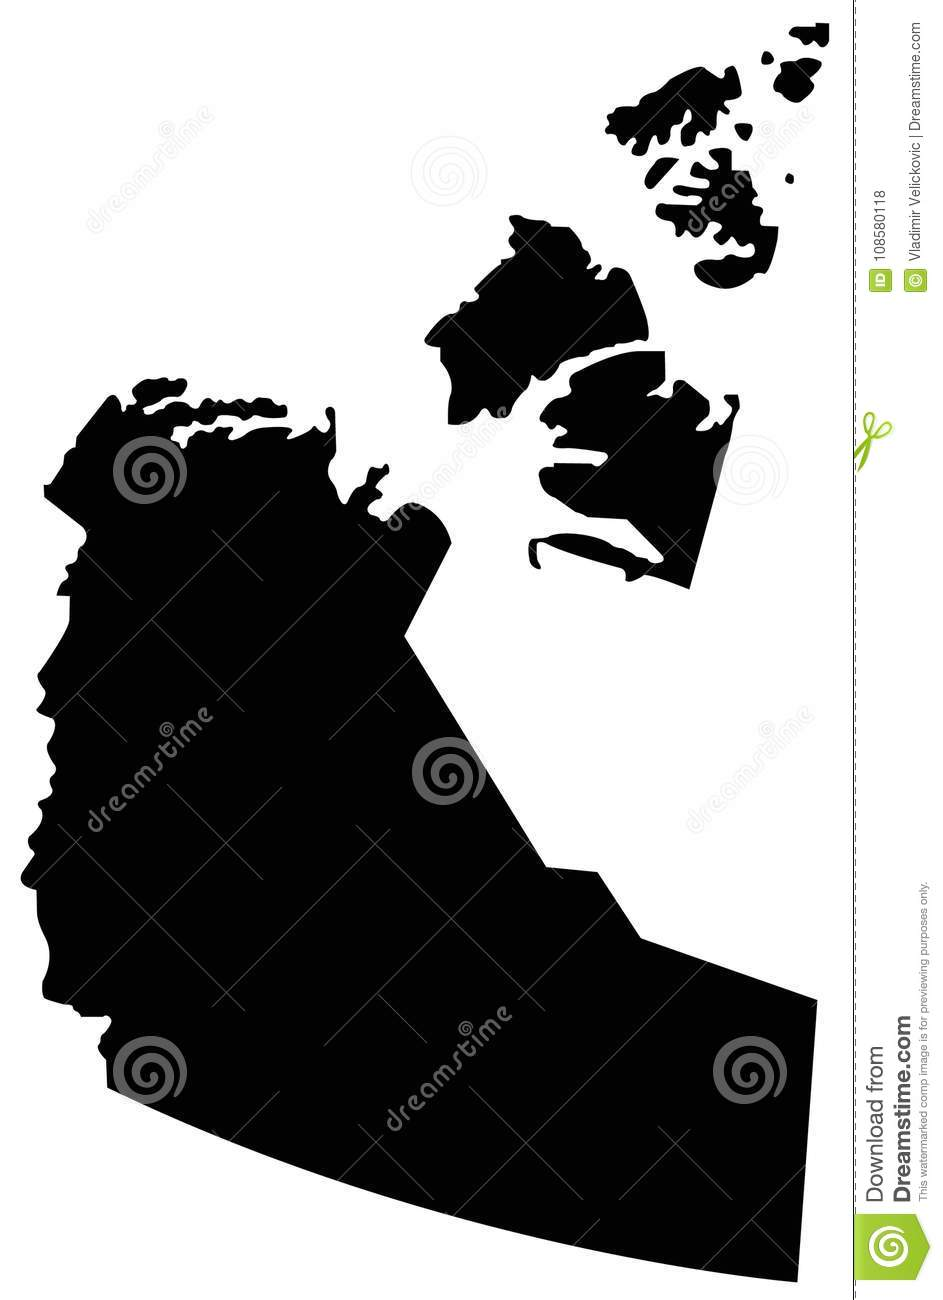 Northwest Territories Map - Territory In Northern Canada Stock ...